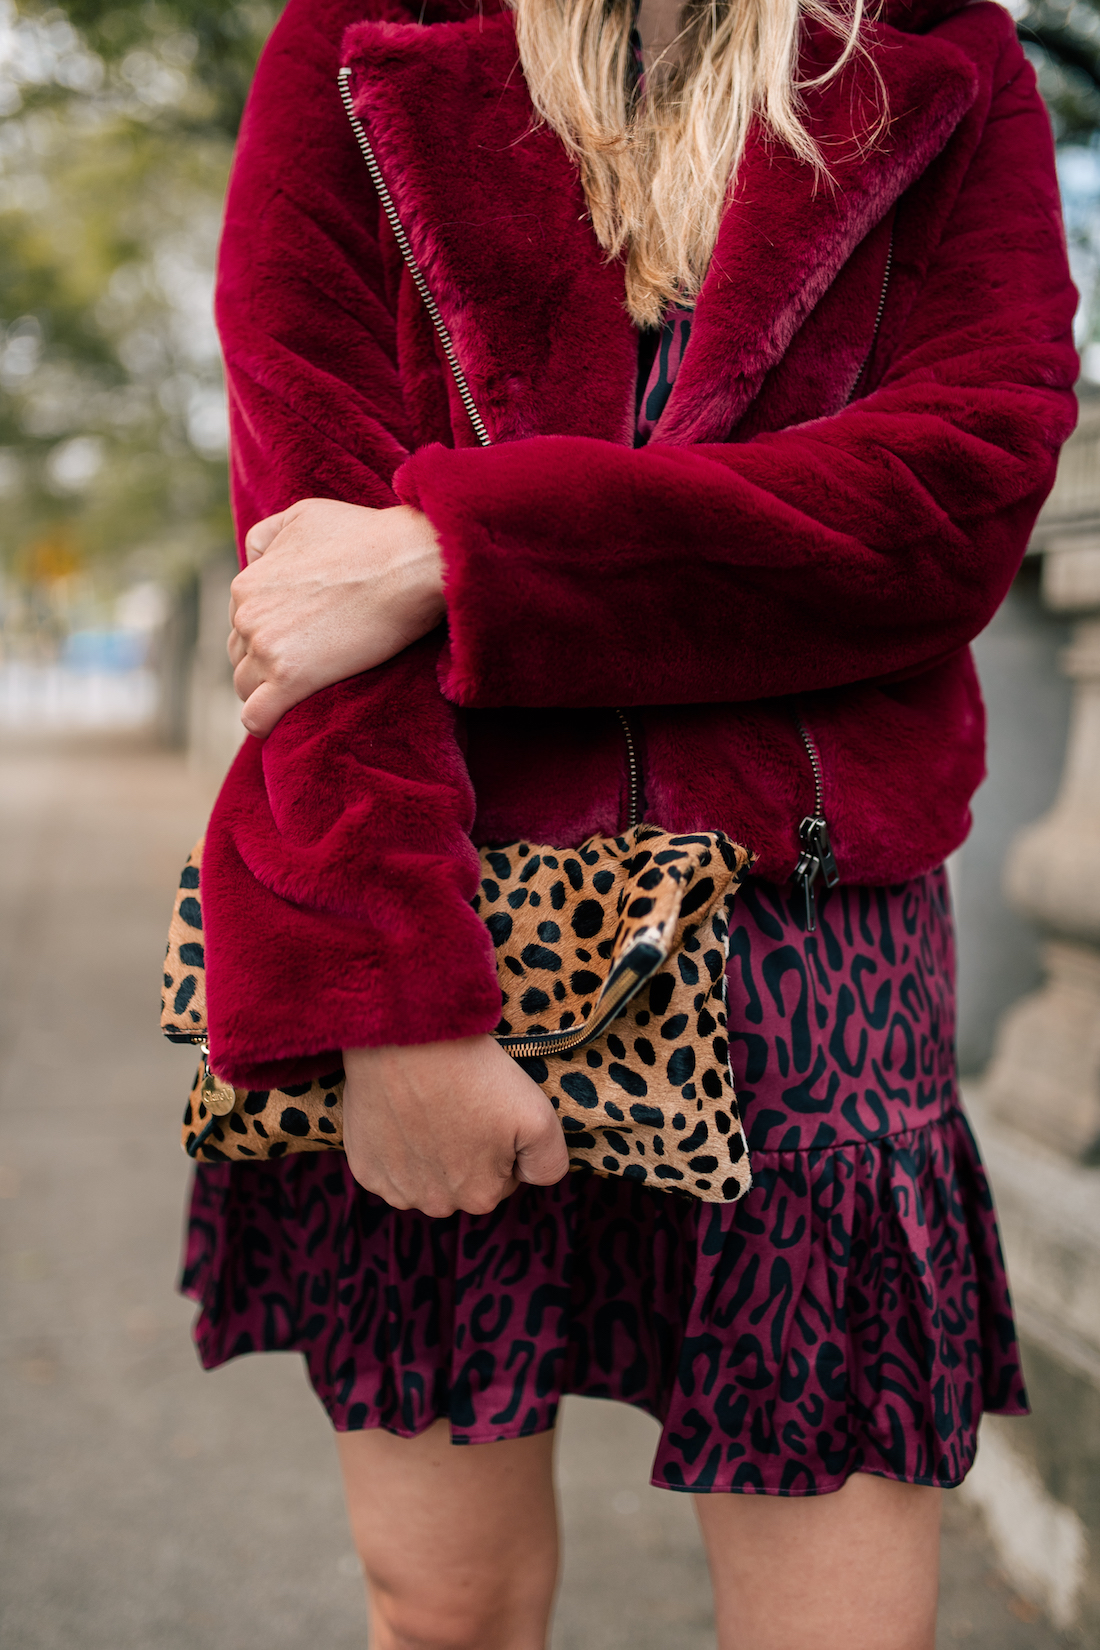 a girl holding a leopard purse and a red jacket that are part of the rebecca minkoff inclusive collection